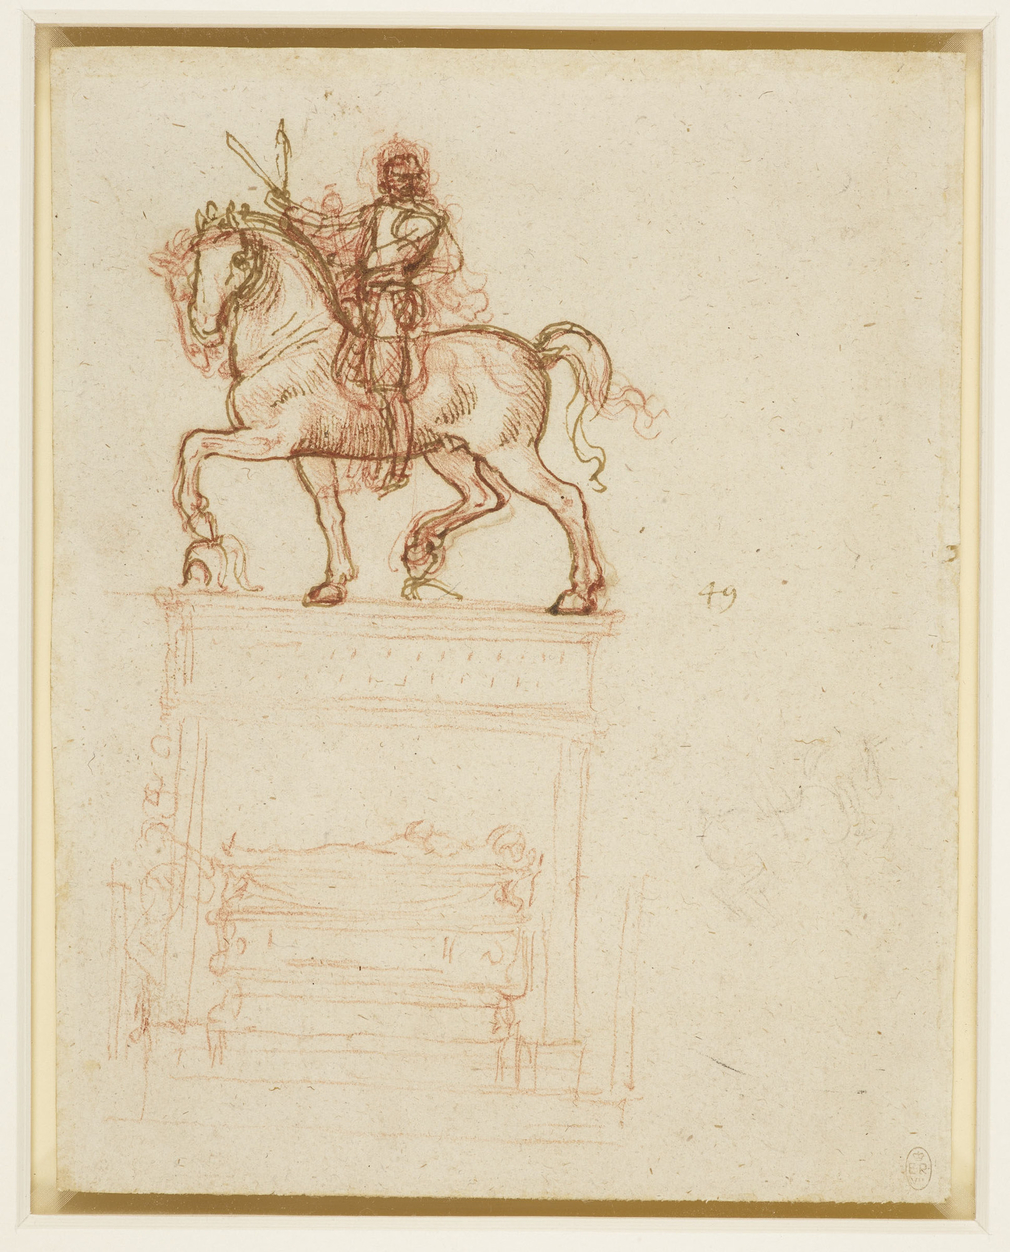 Recto: a study for the Trivulzio Monument, with the base and sarcophagus vaguely indicated;a vague sketch of a horse and rider, lower right. Verso: a partial tracing through from the recto, with the suggestion of a rider and a pedestal. Probably for